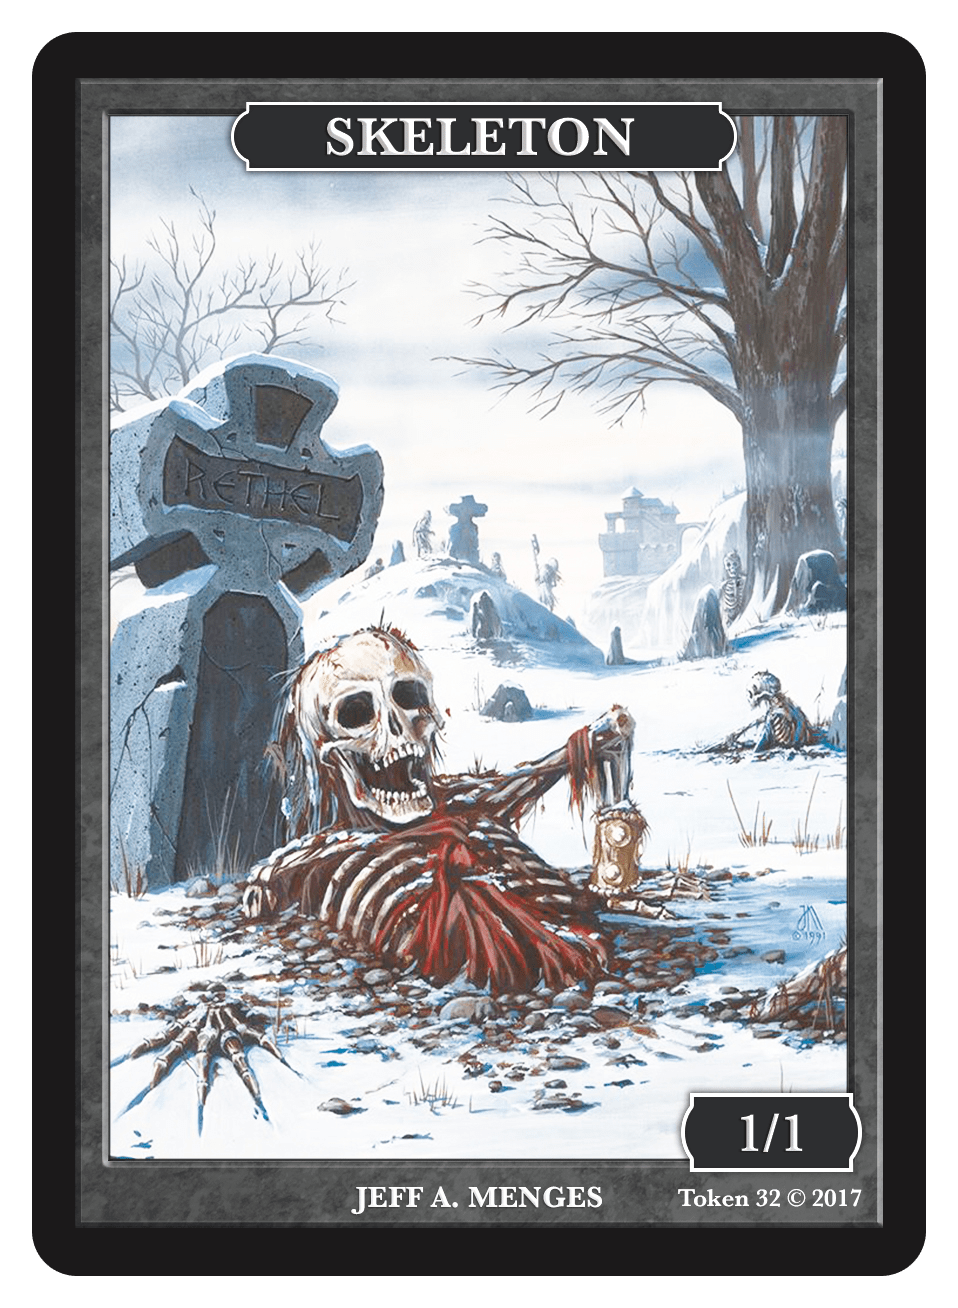 Skeleton Token (1/1) by Jeff A. Menges - Token - Original Magic Art - Accessories for Magic the Gathering and other card games